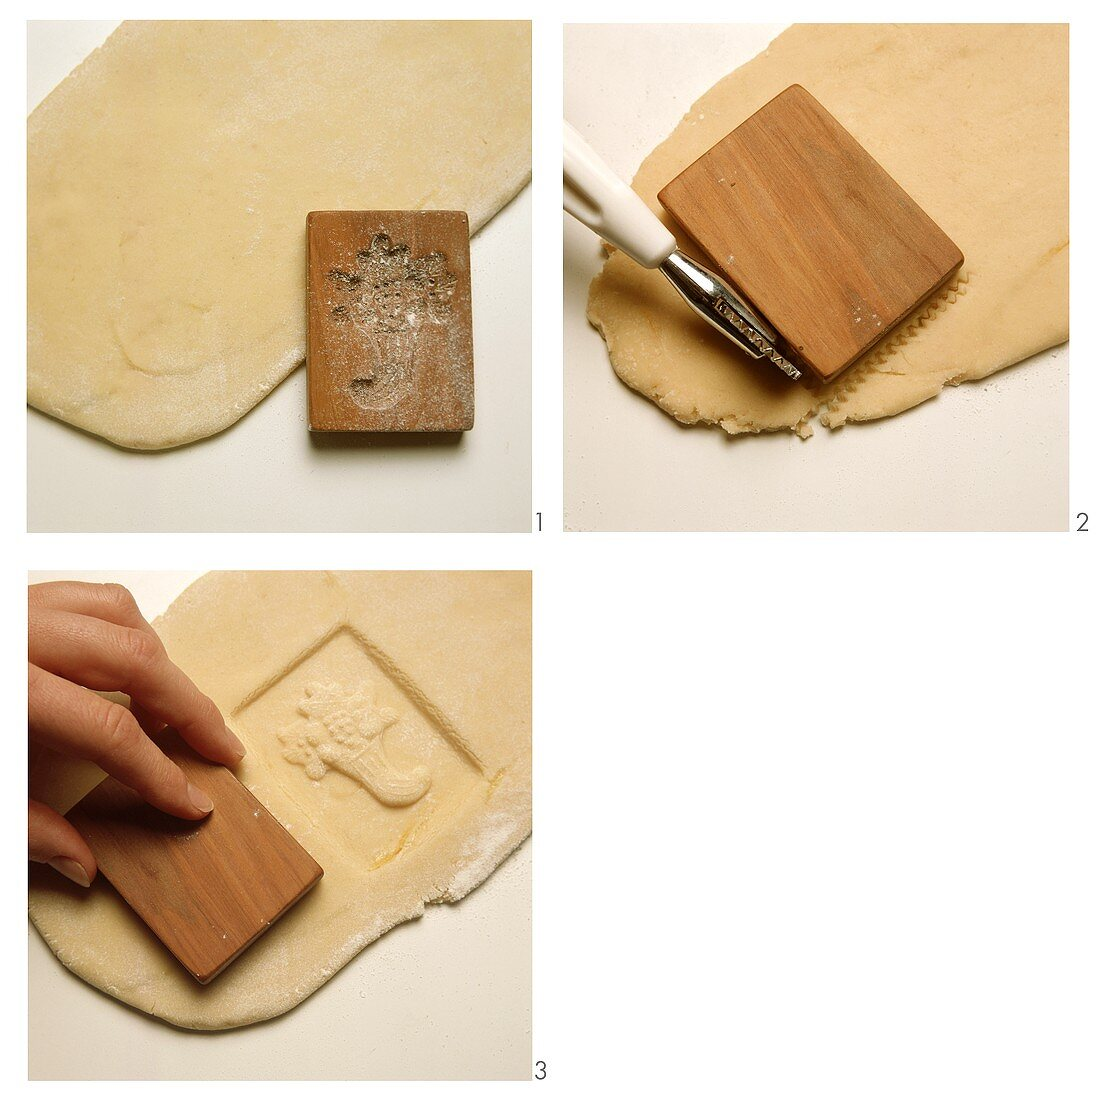 Baking with wooden moulds